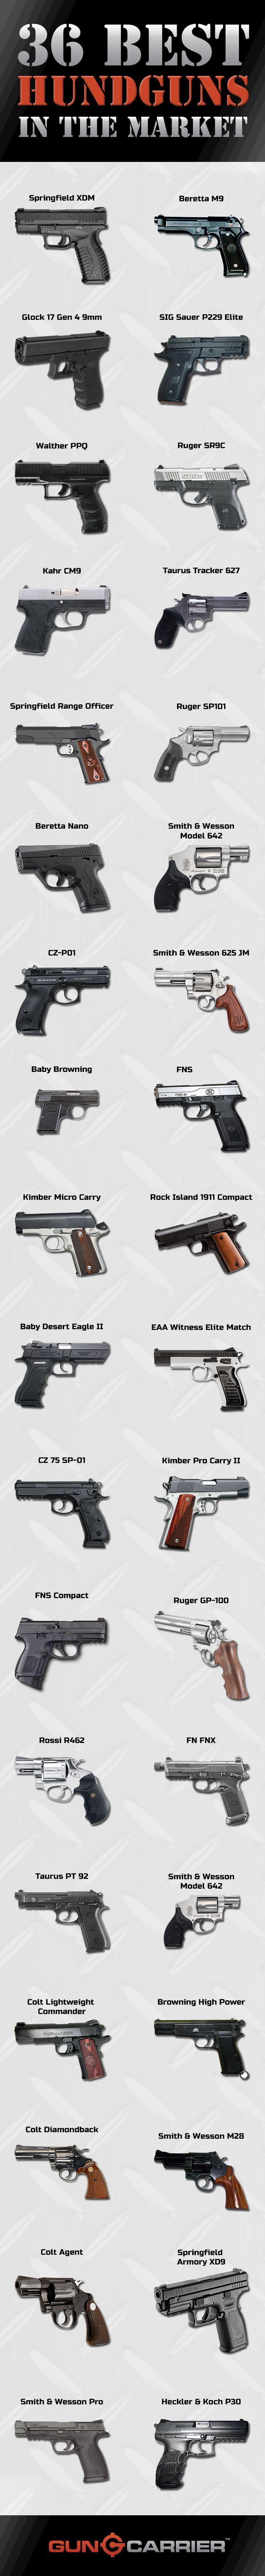 36 Best Handguns You Will Ever Need | https://guncarrier.com/best-handguns/